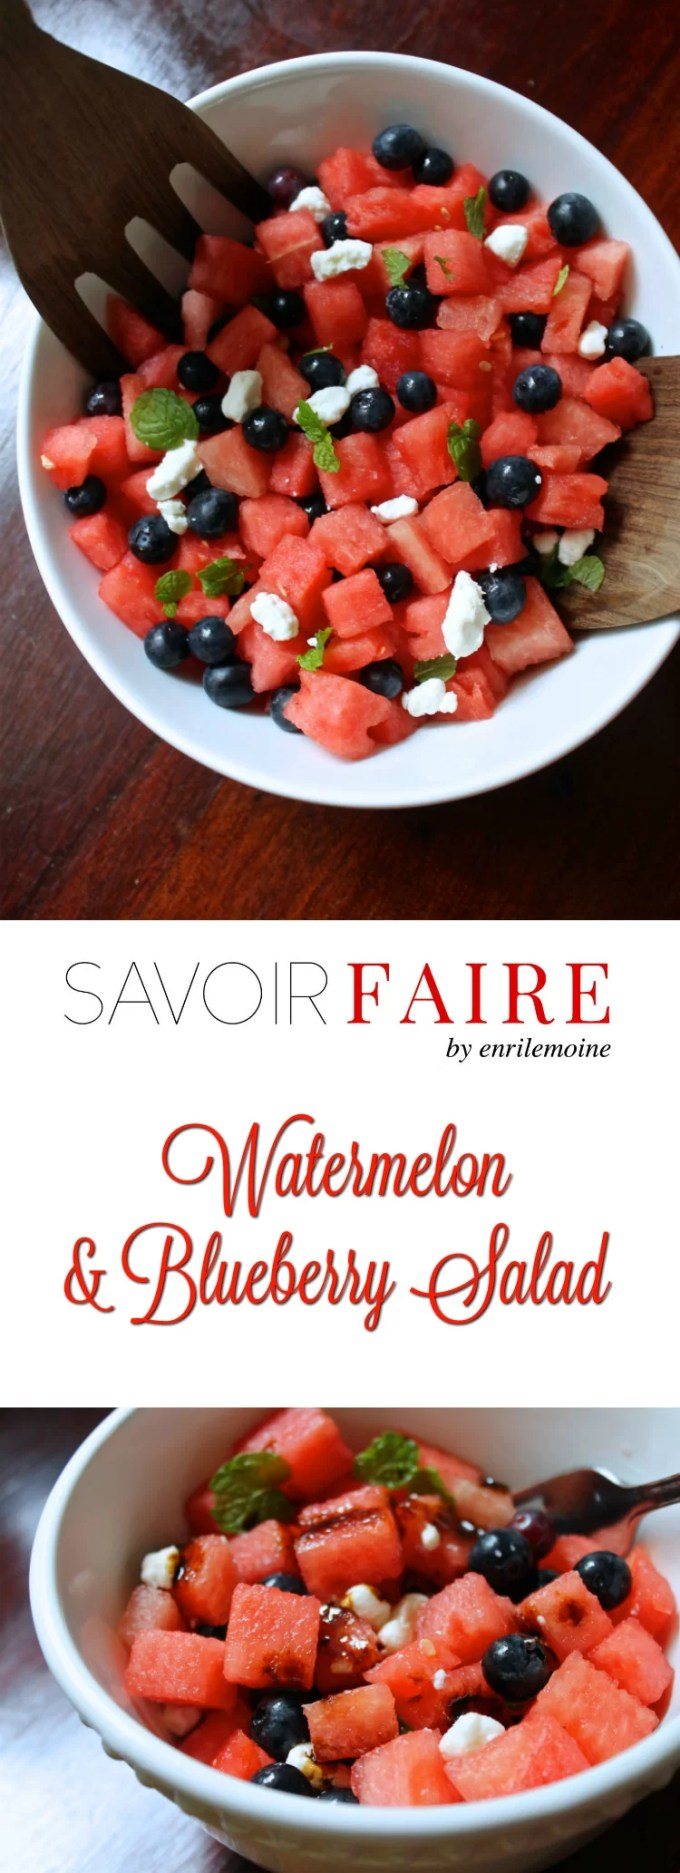 This watermelon & blueberry salad is the perfect summer side dish made with seasonal fruit. It can be served as a snack and it's a must in any 4th of July BBQ